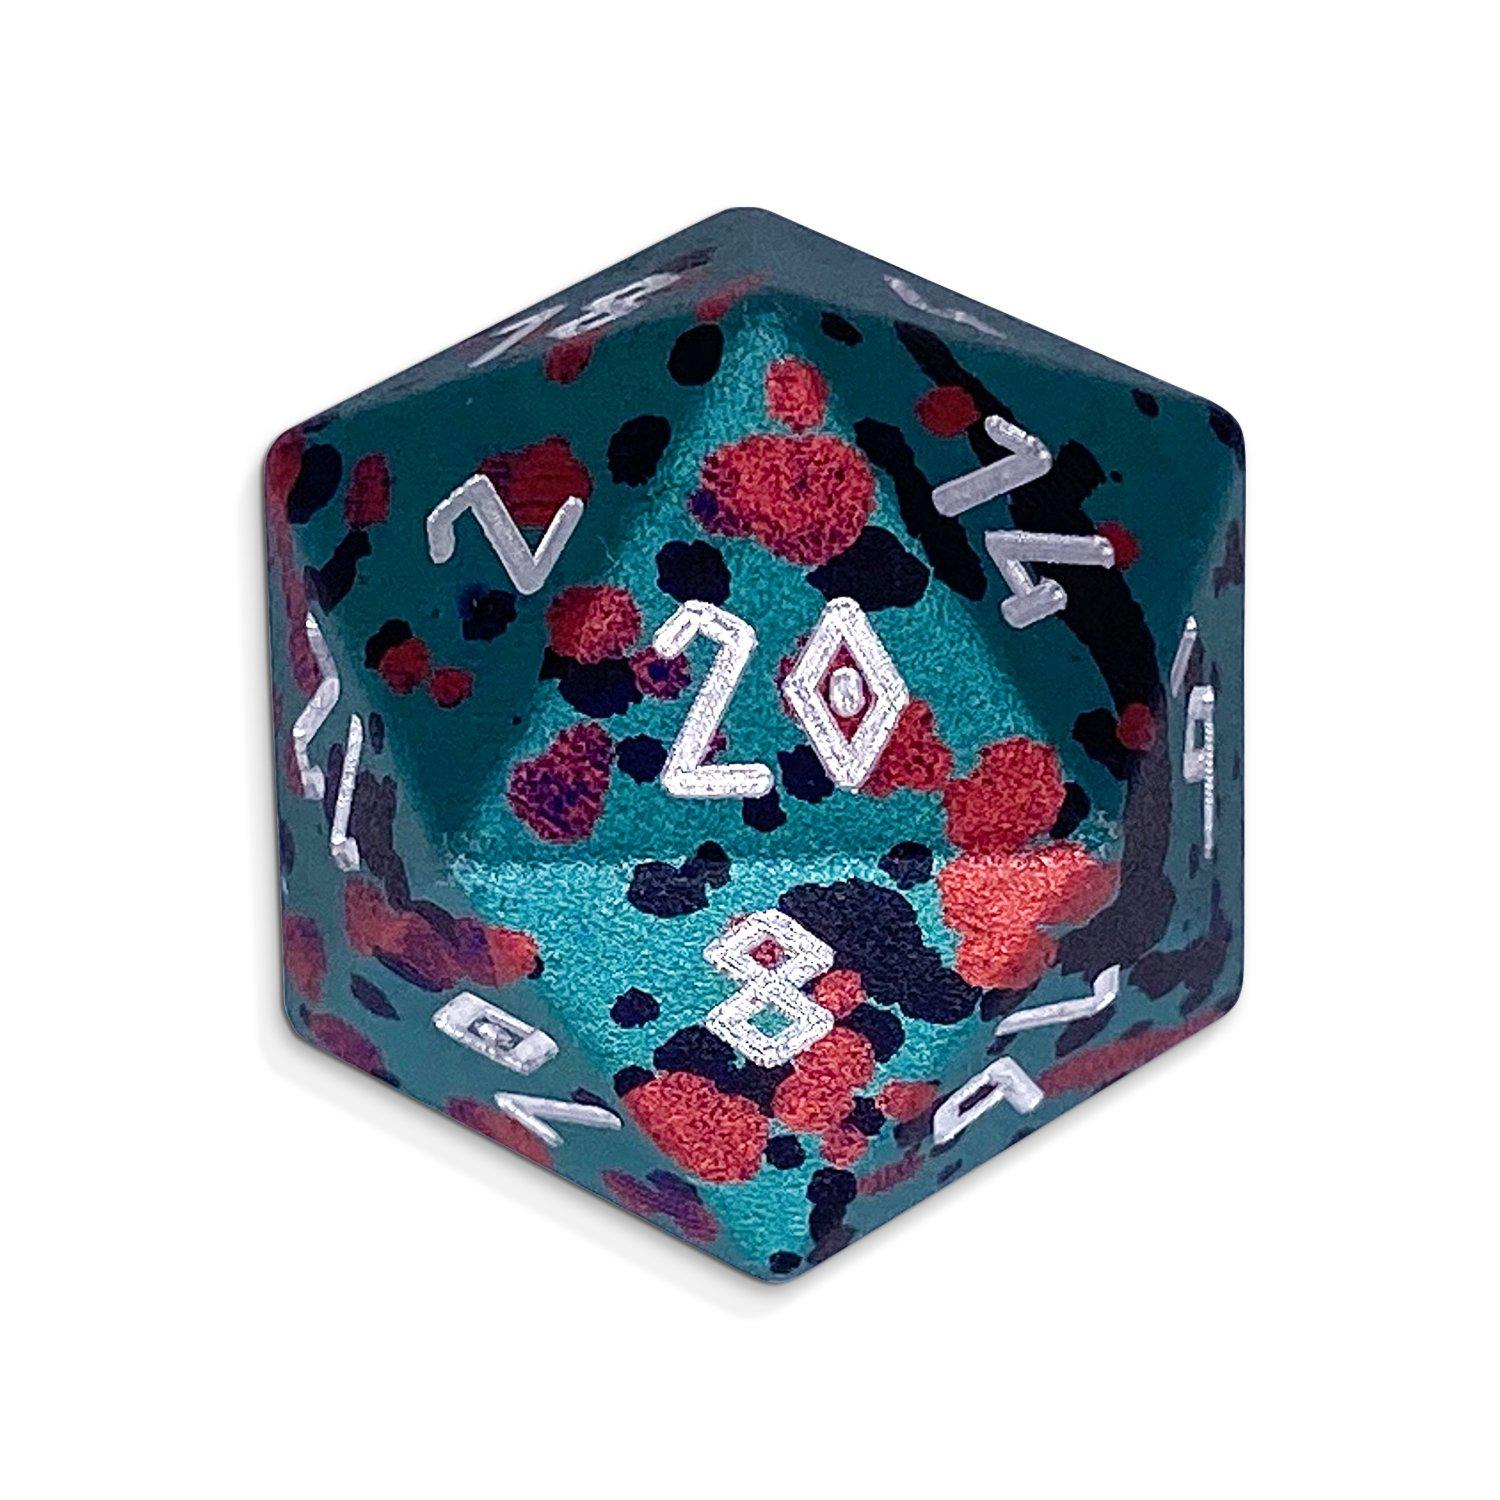 Wild Hunt - Single D20 Wondrous 20mm 6063 Aircraft Grade Aluminum Metal Die